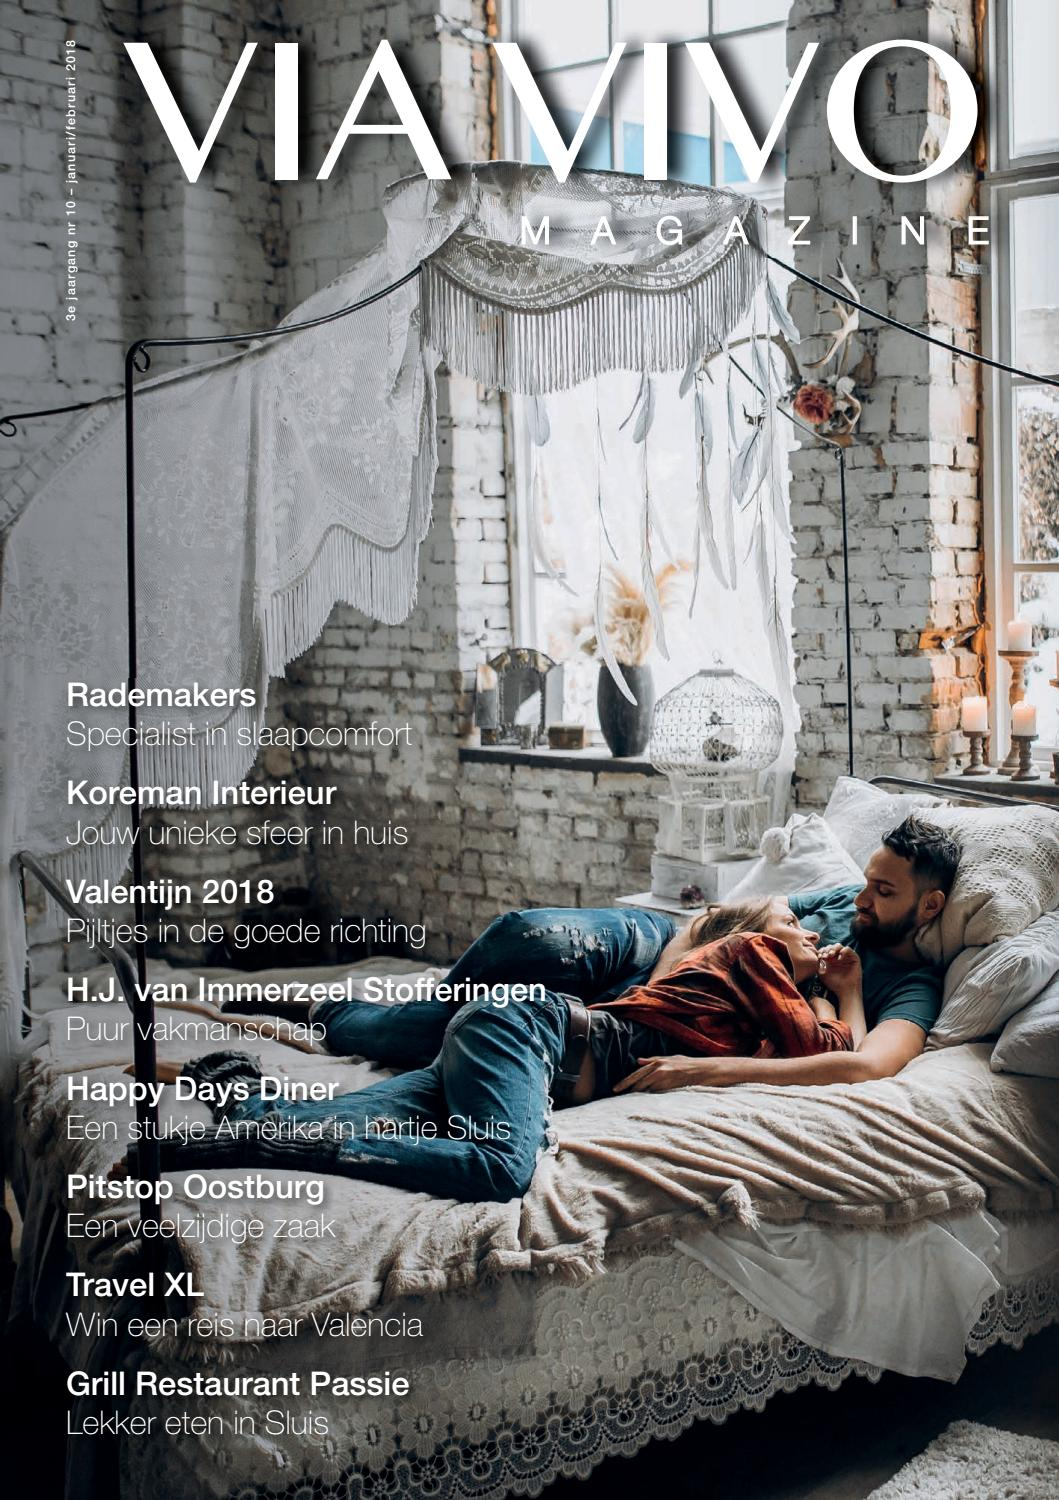 Via Vivo Magazine #10 by ViaVivo Magazine - issuu